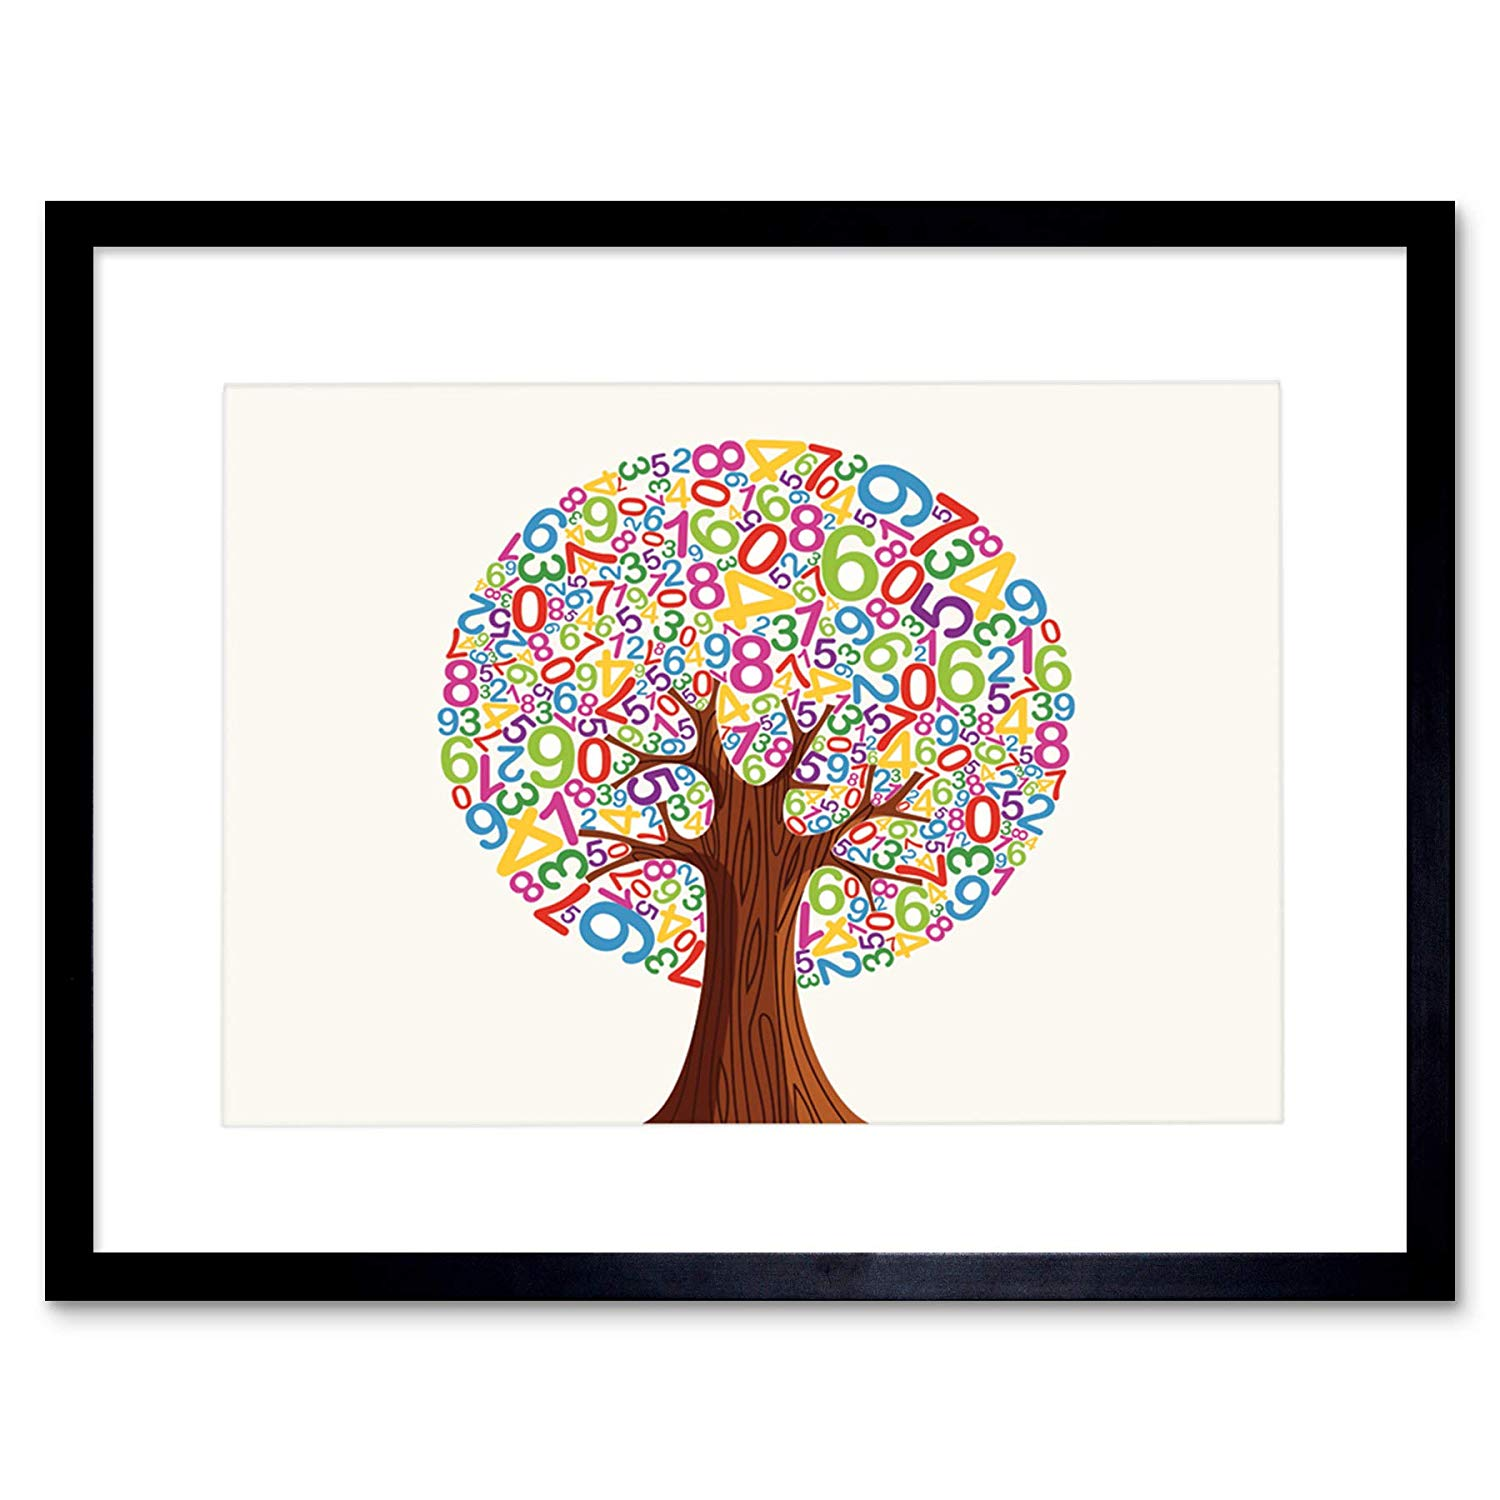 1500x1500 Painting Drawing Abstract Tree Style Number Leave